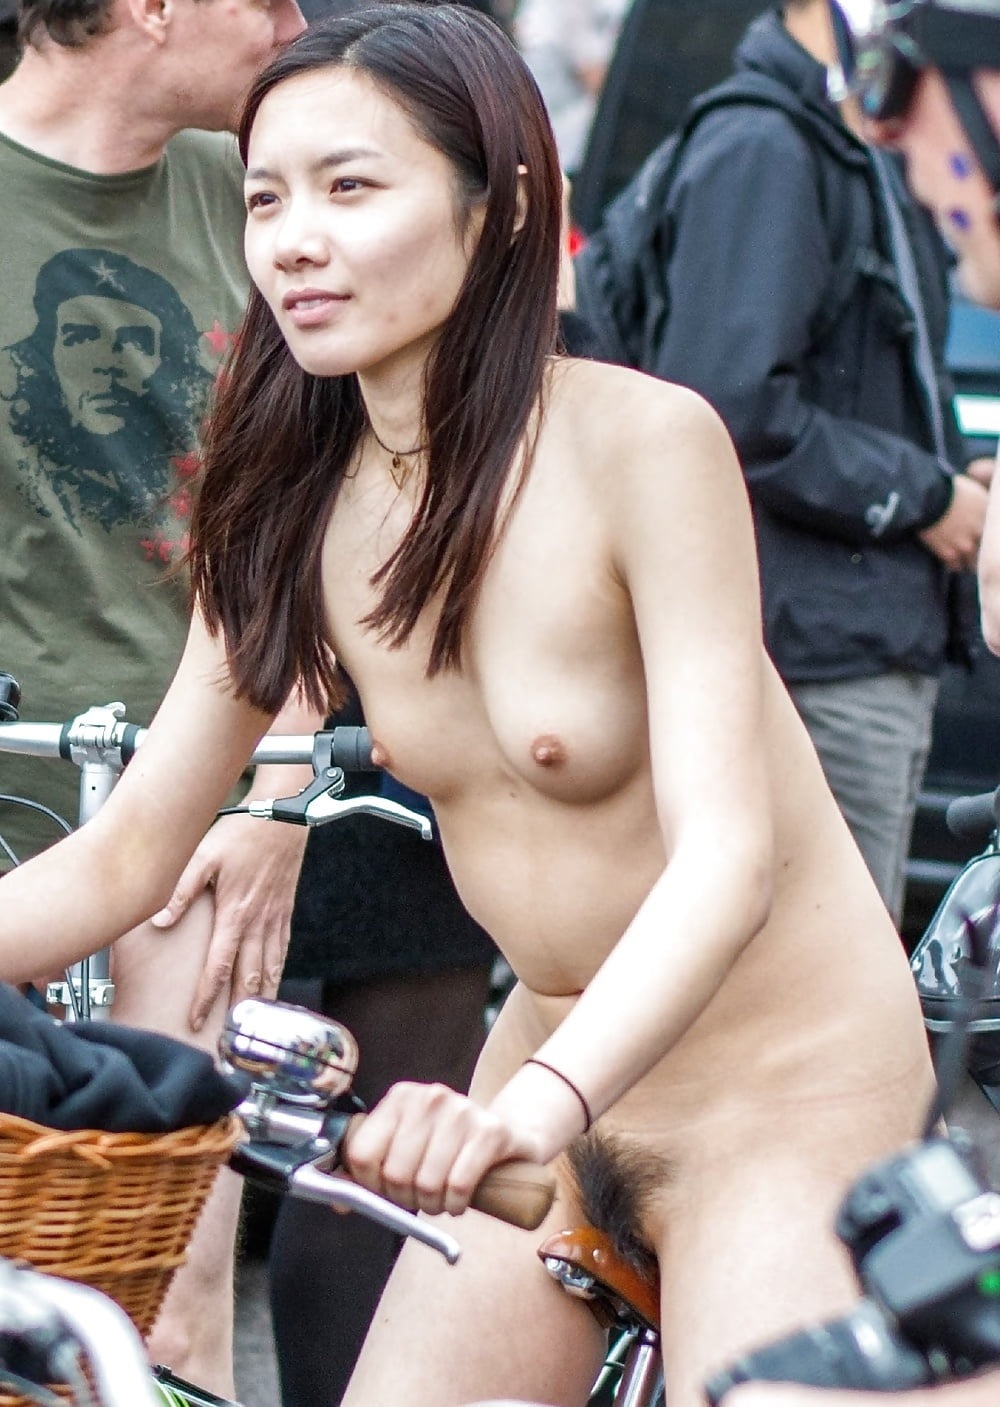 Asian topless in public looking really gorgeous